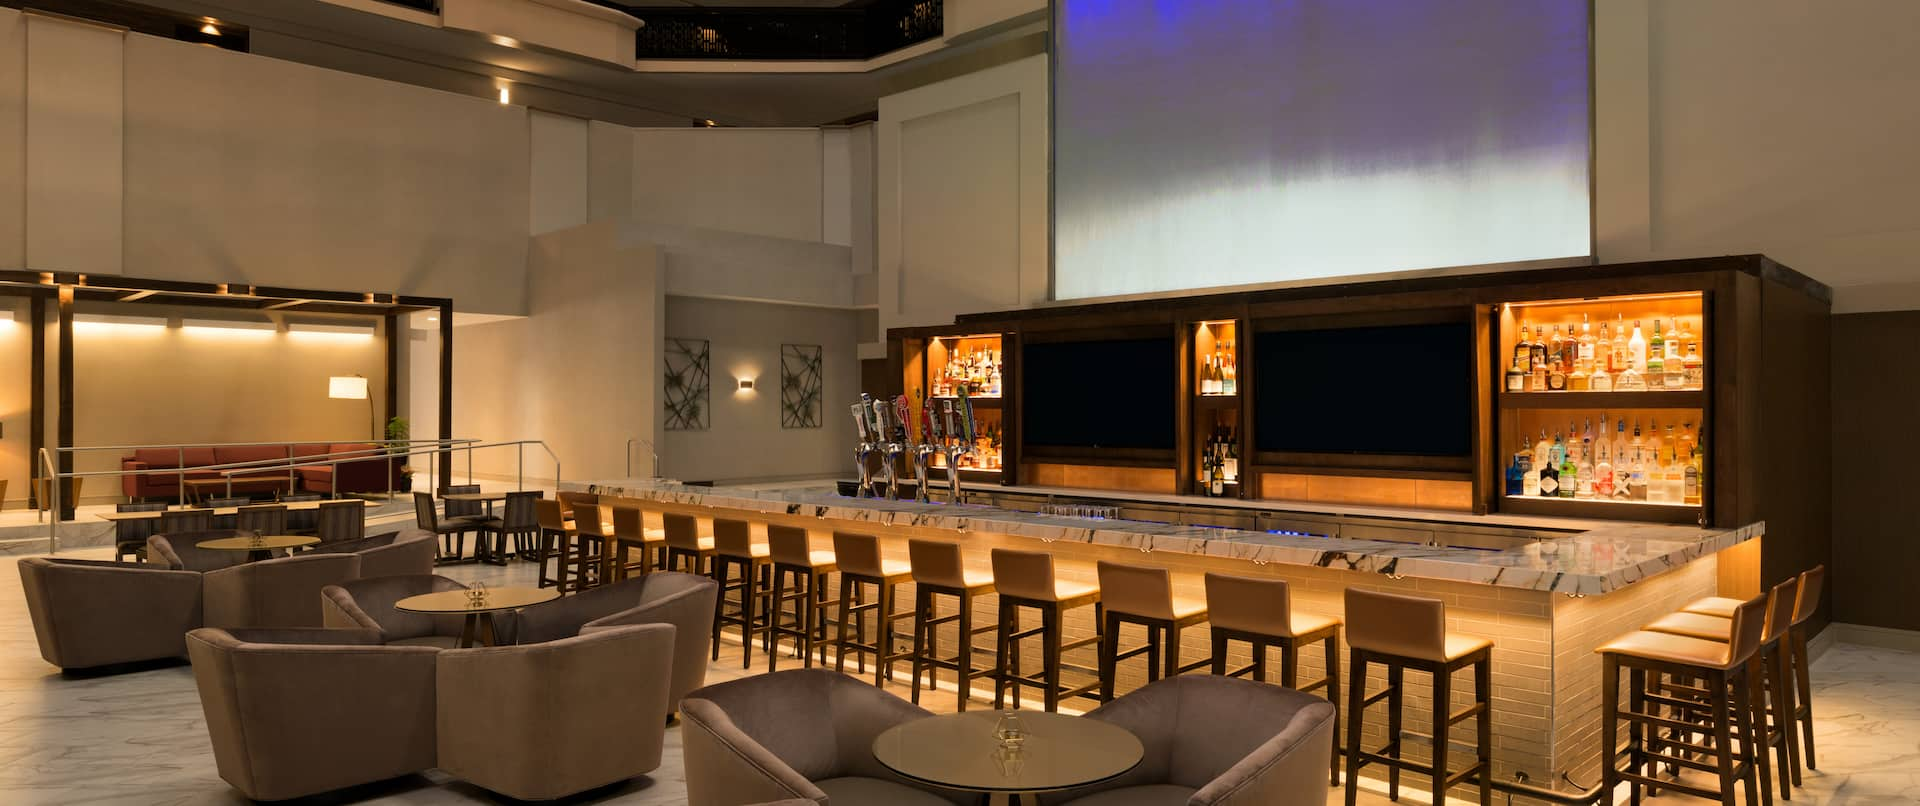 Bar Lounge Seating Area with Bar Counter and Bar Stools